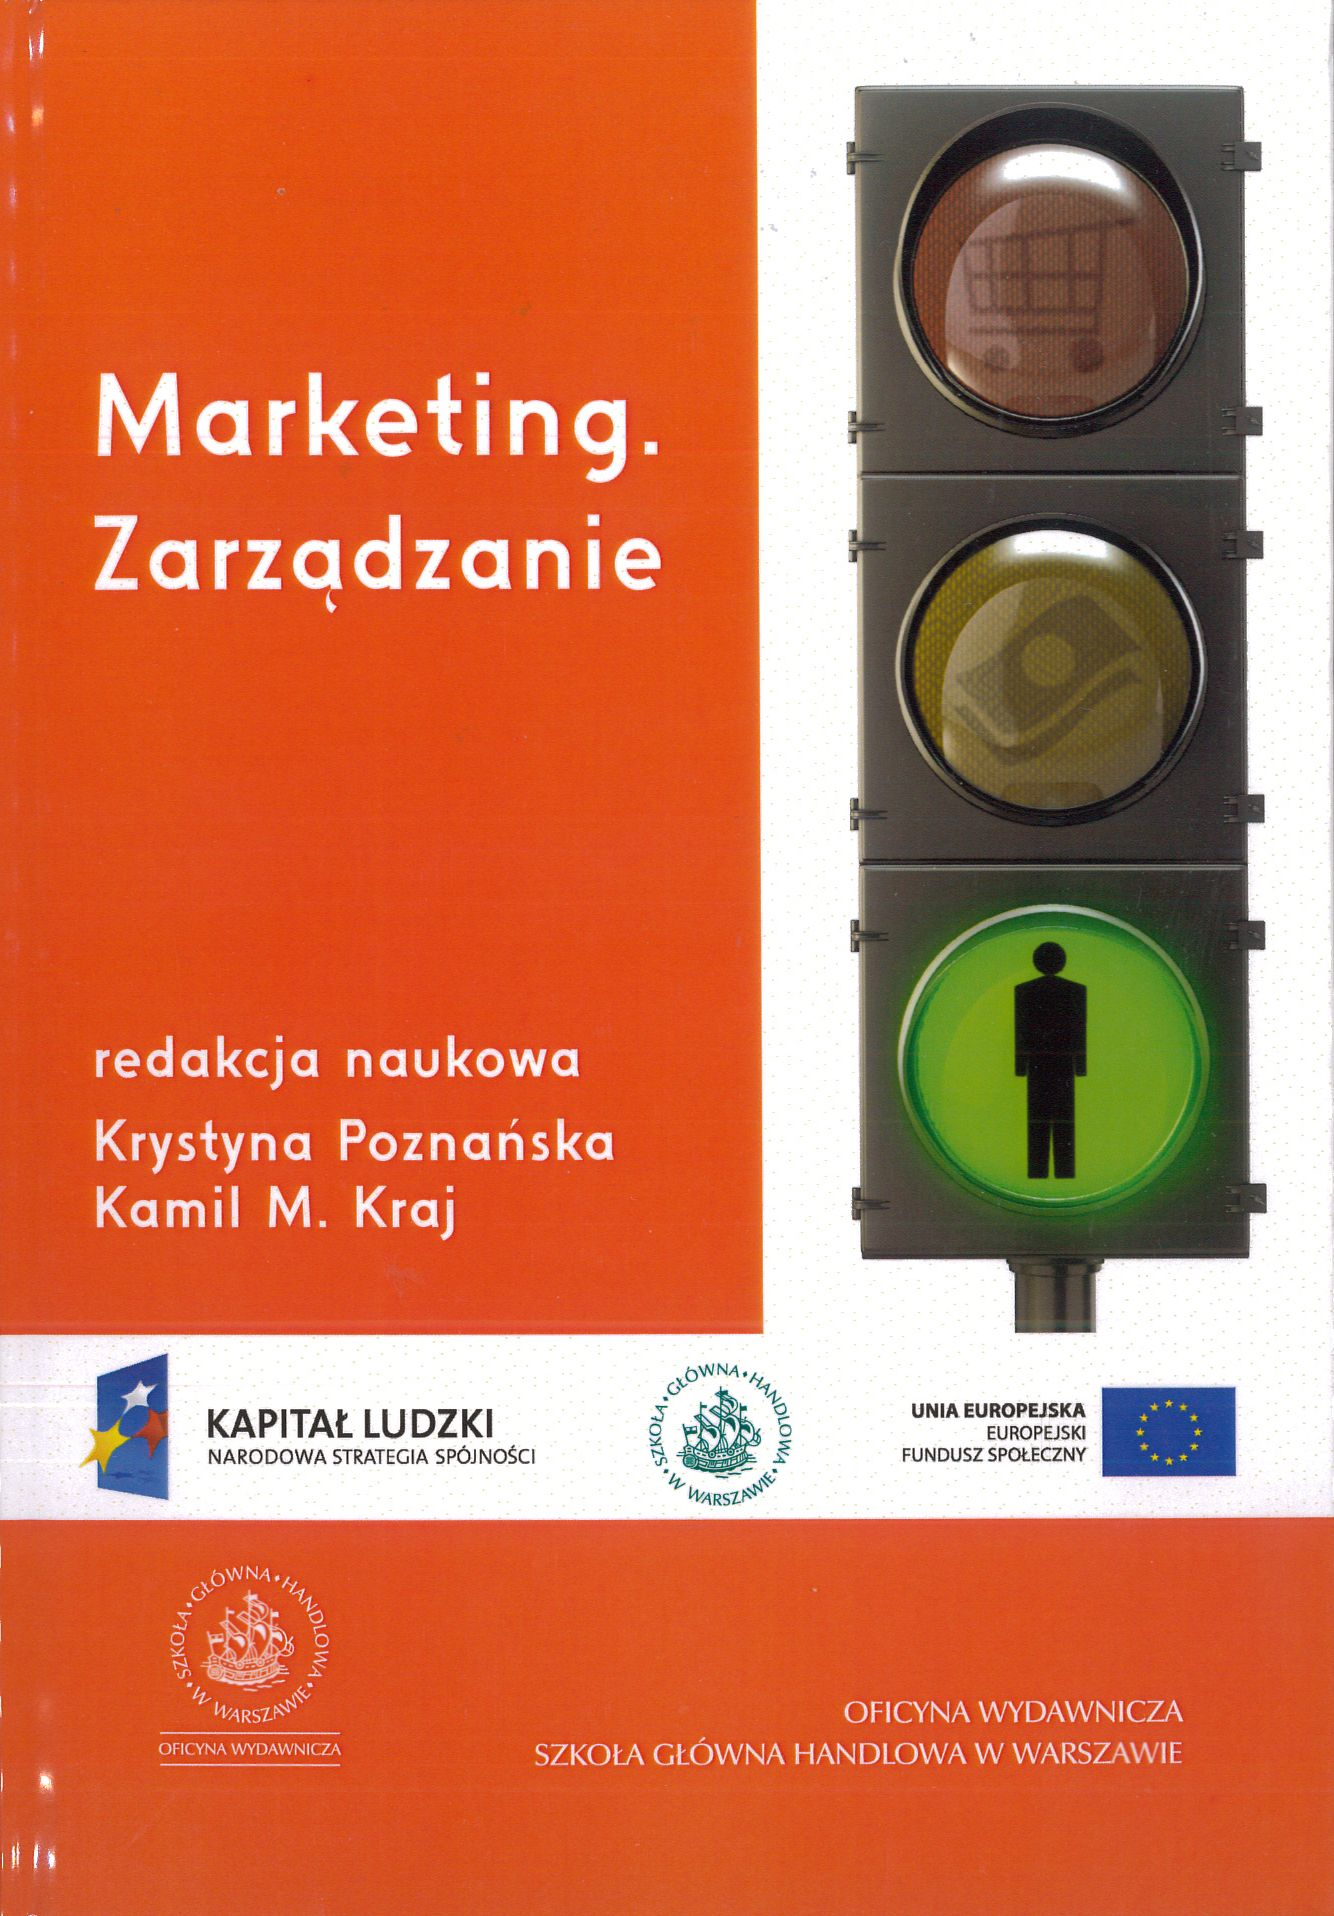 okladka_marketing_zarzadzanie.jpg